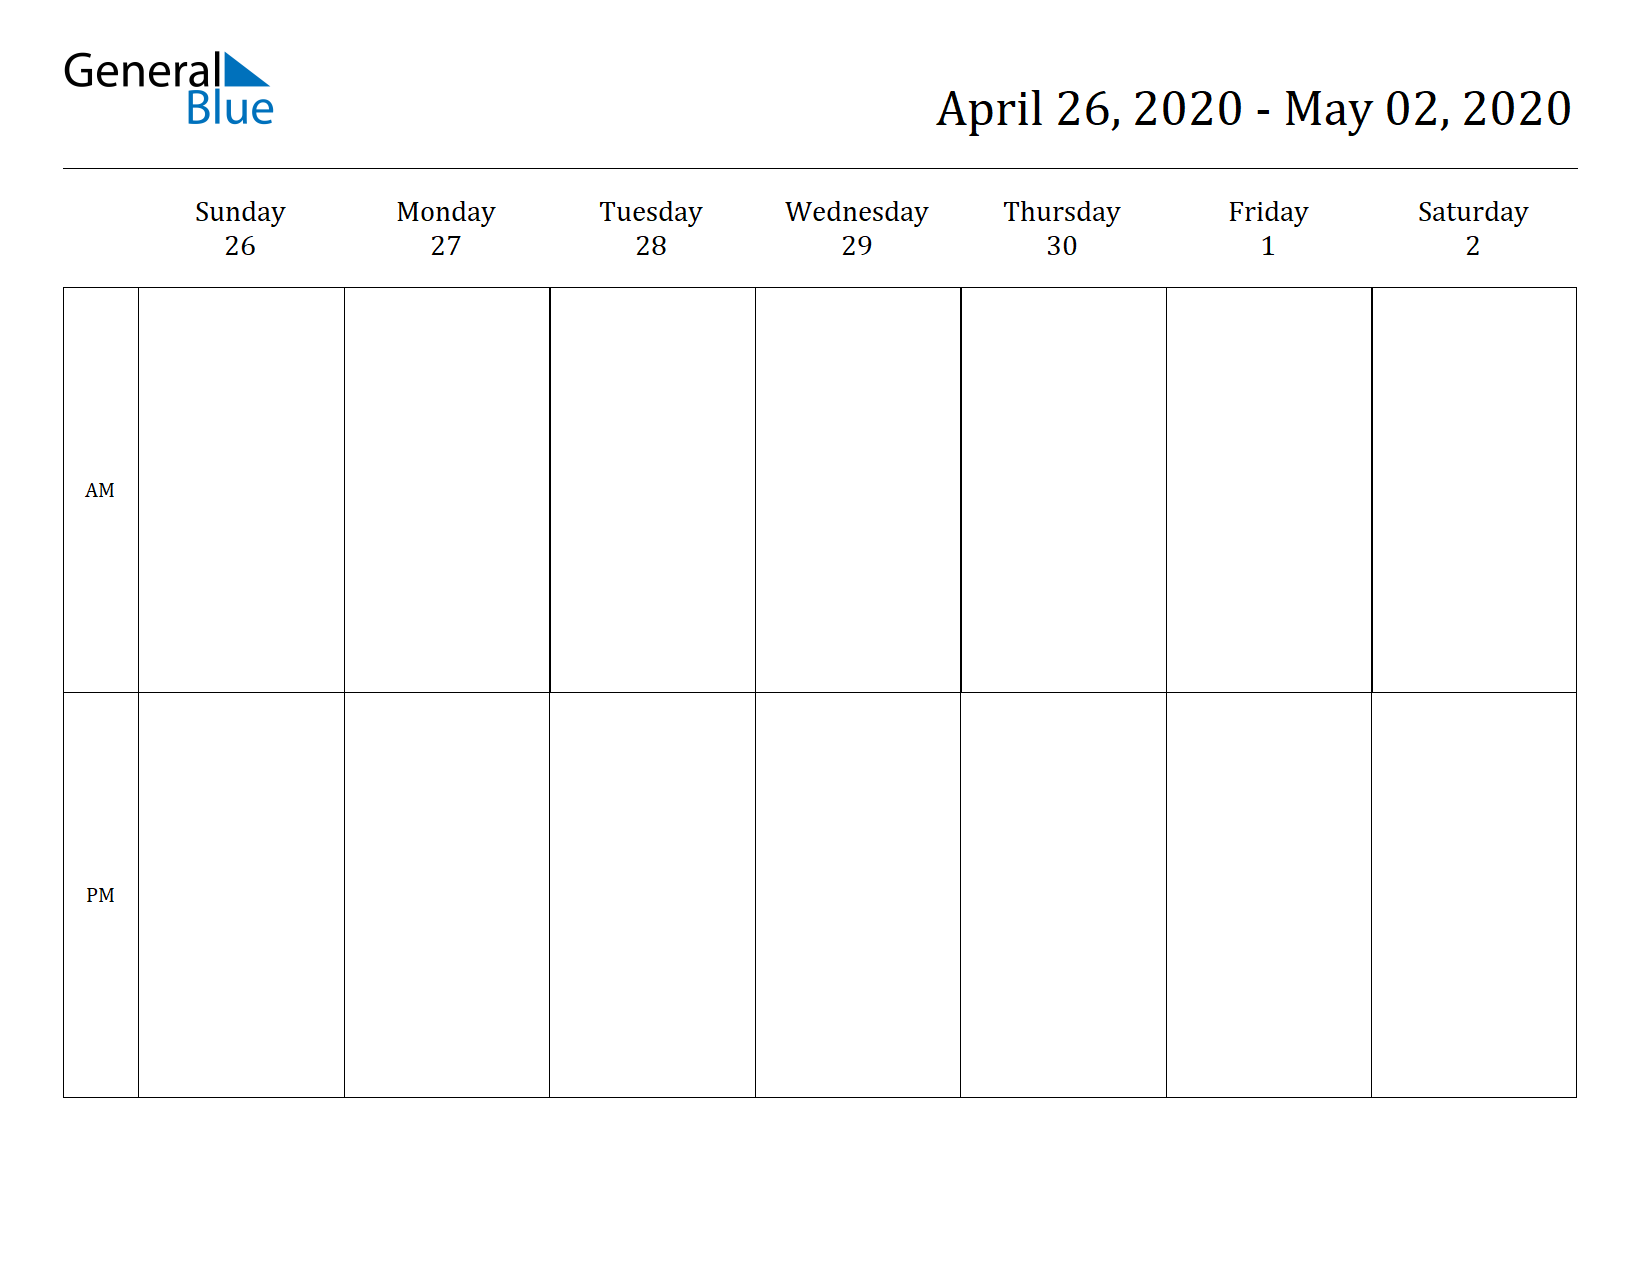 Weekly Calendar for Apr 26, 2020 to May 02, 2020